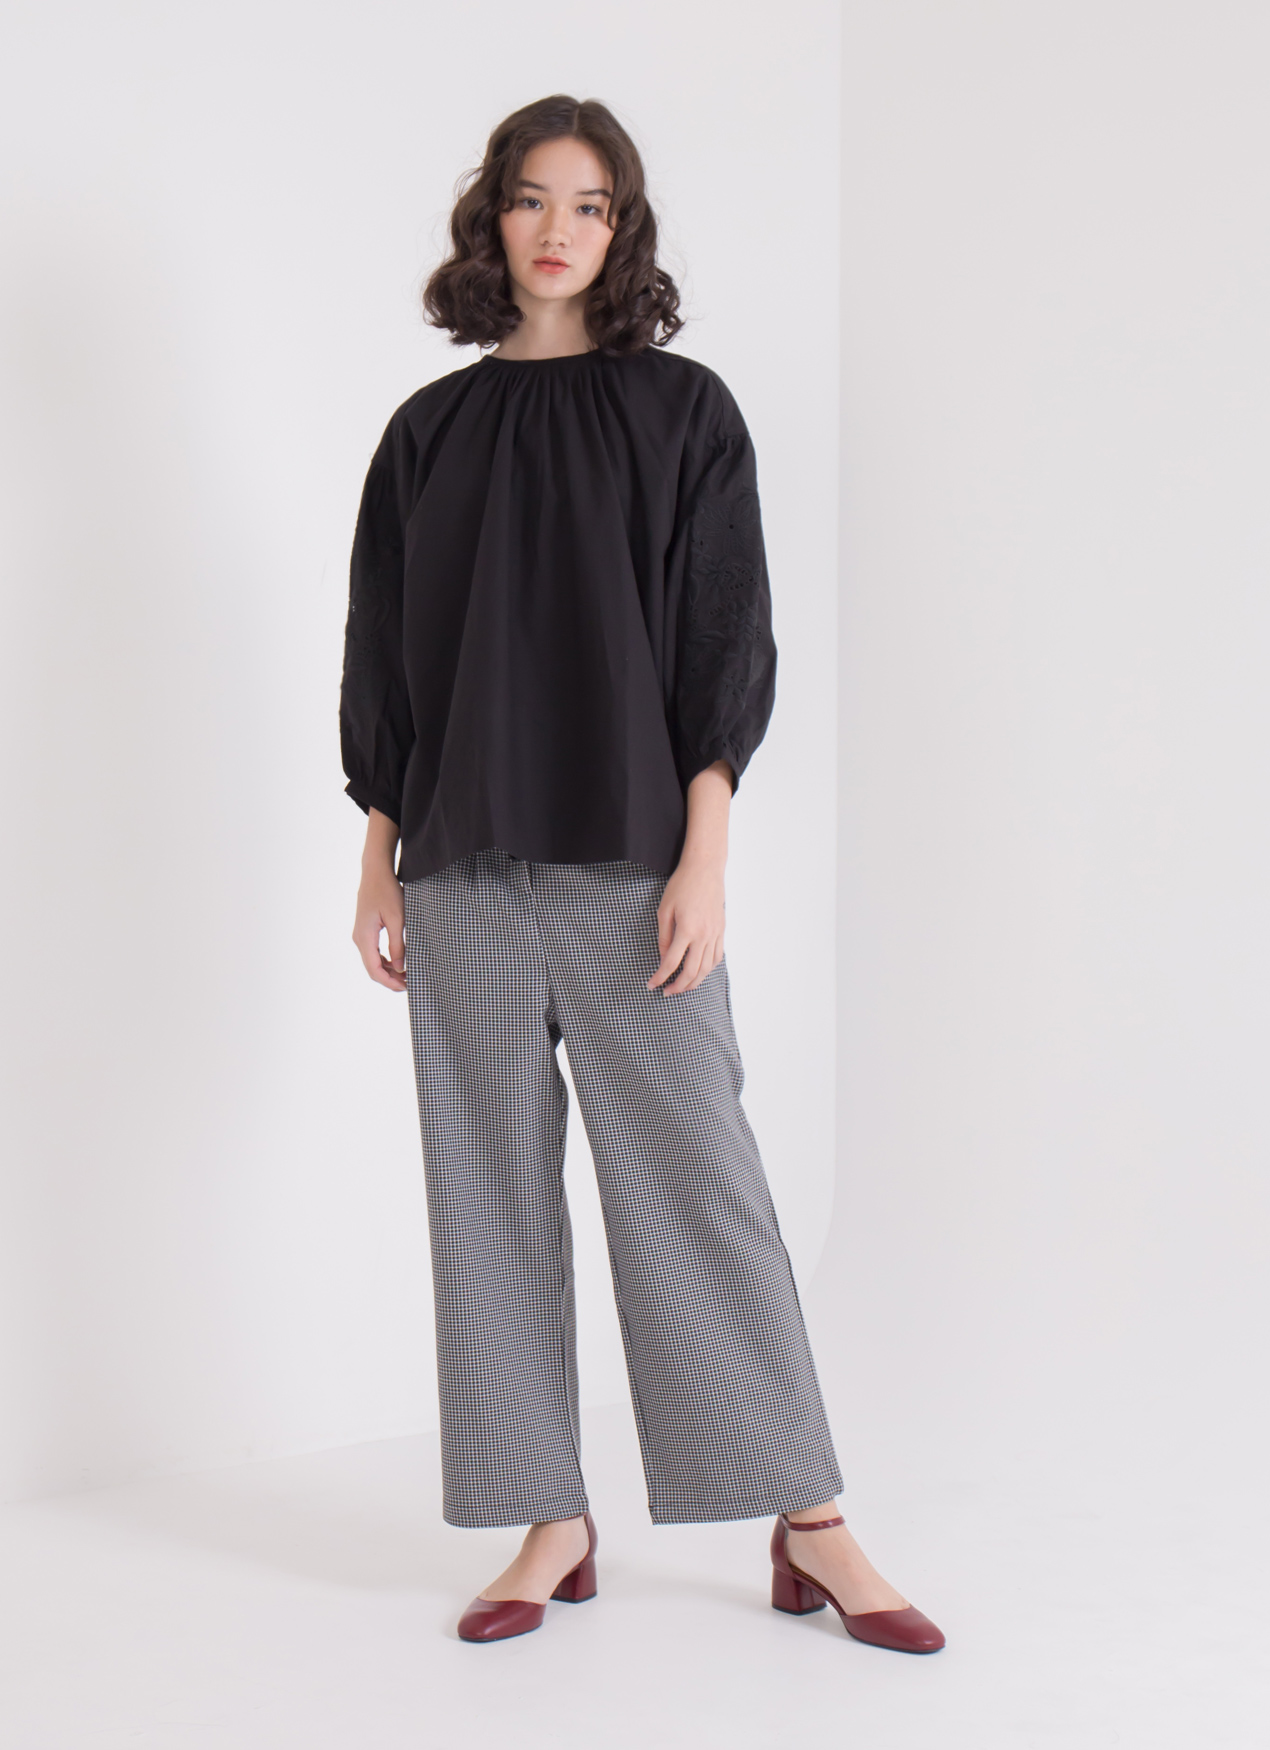 Earth, Music & Ecology Chika Top - Black